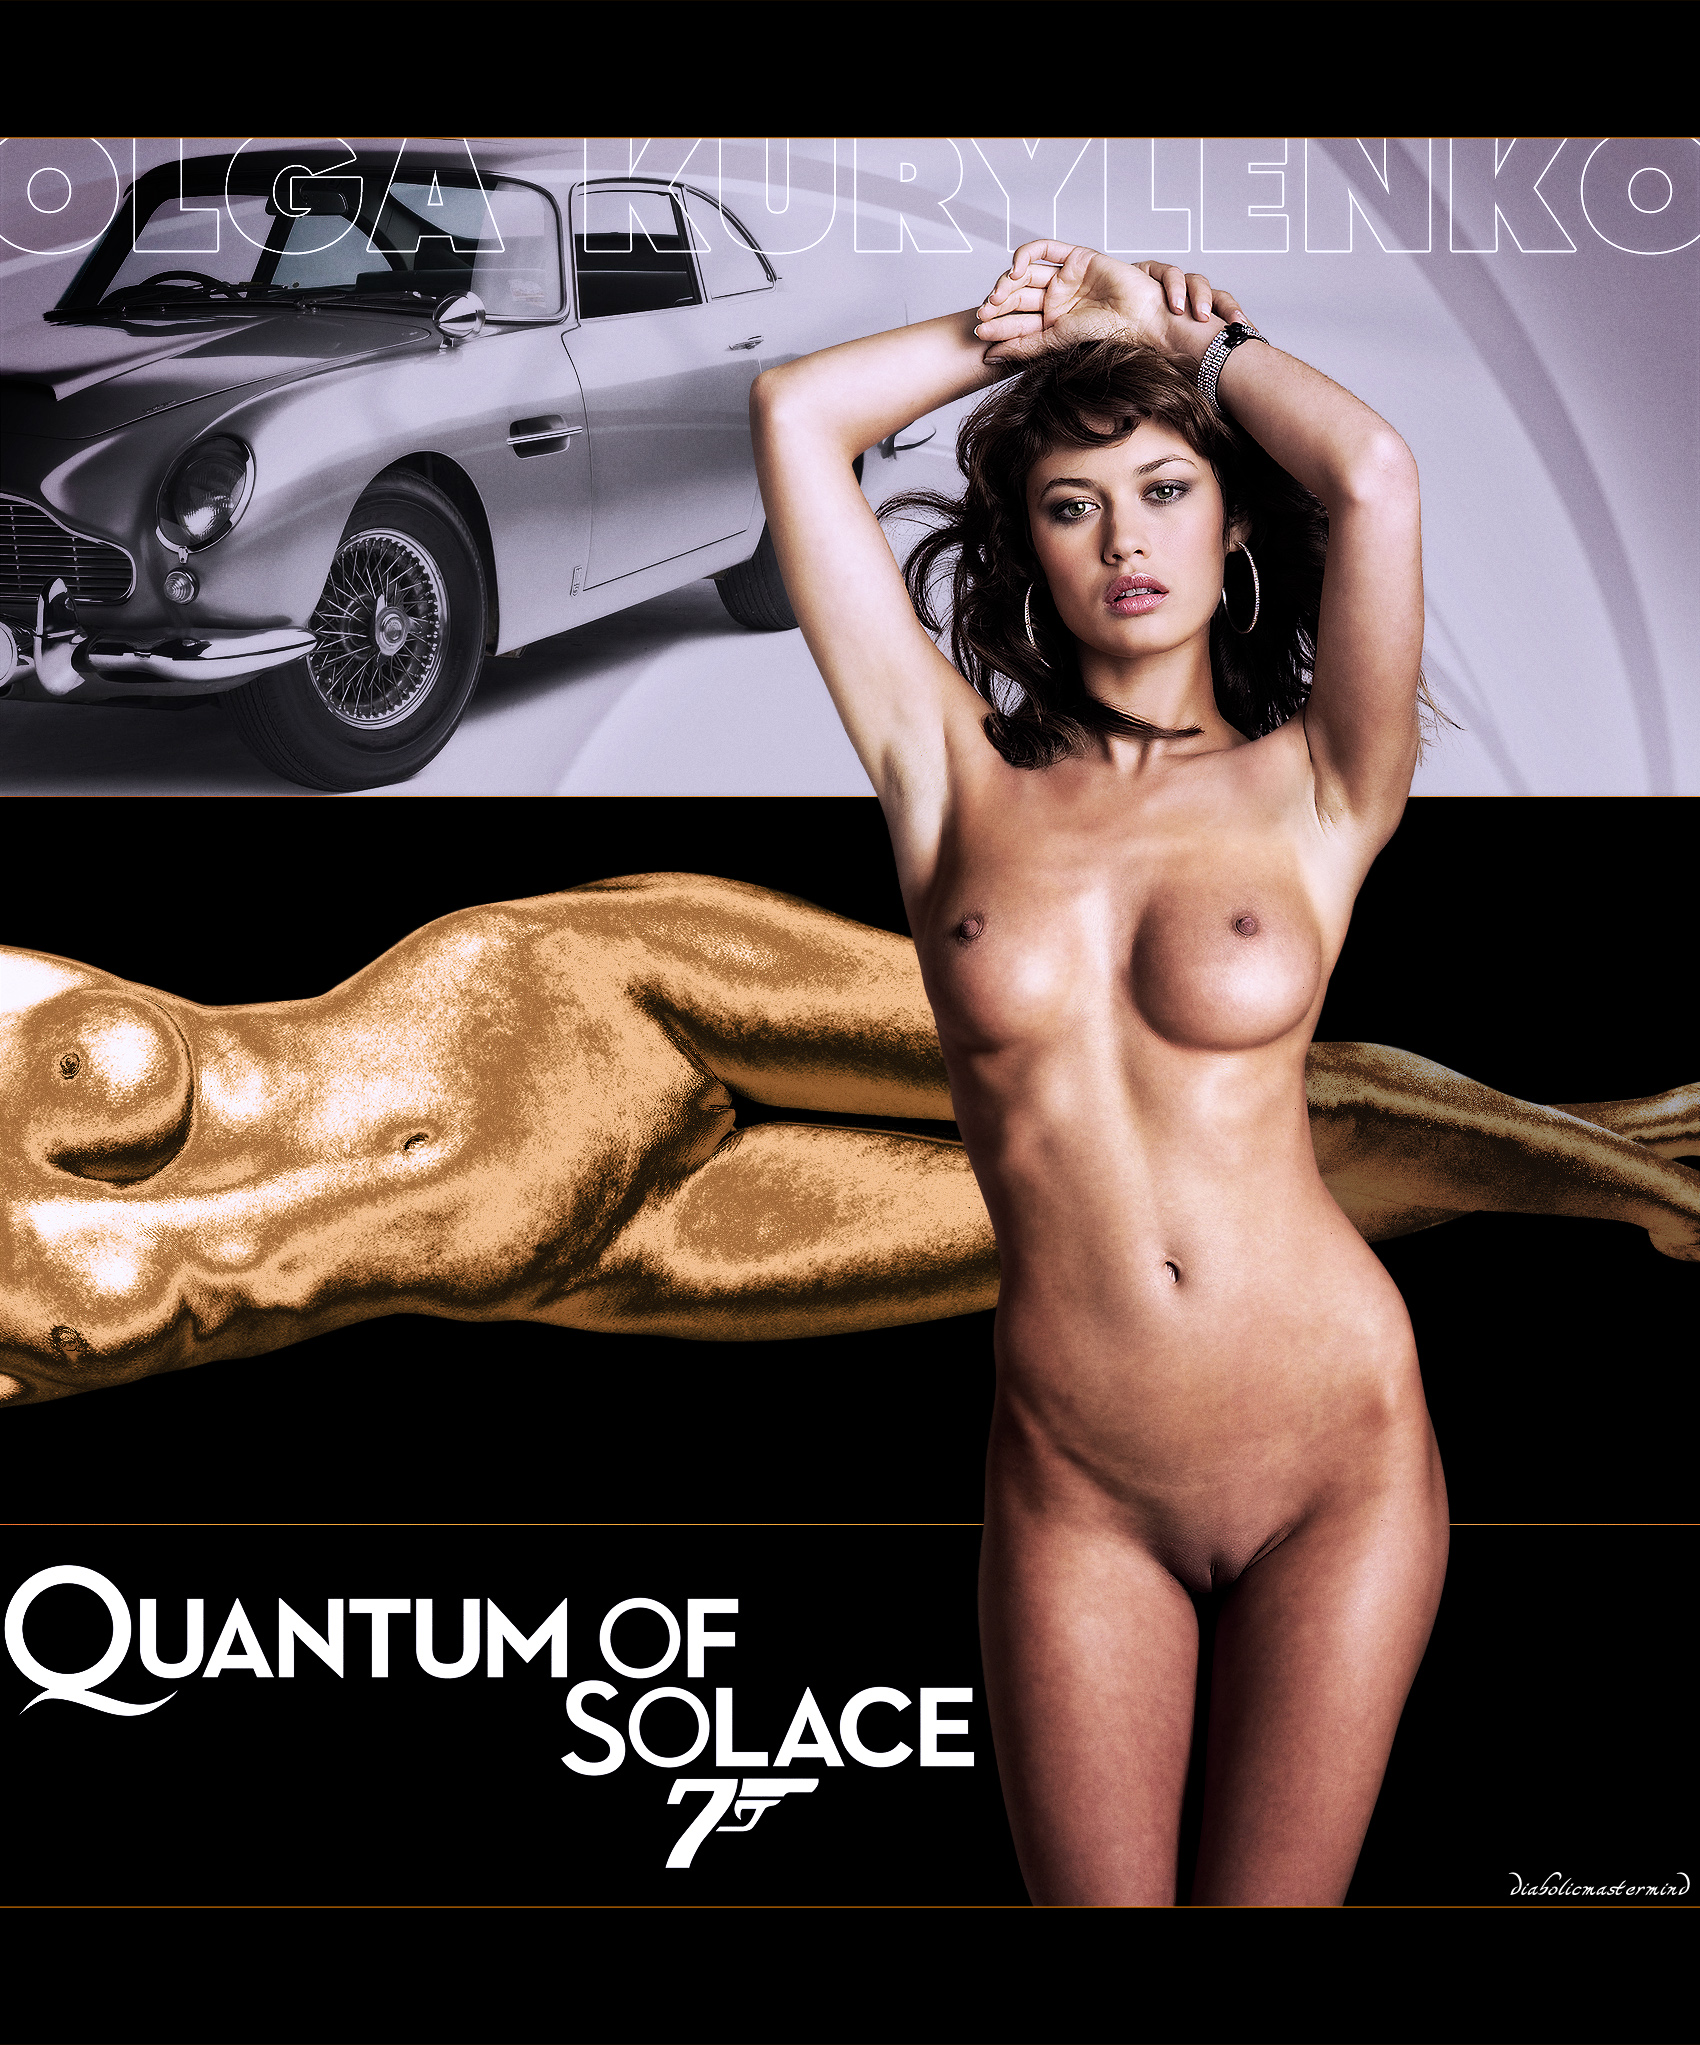 All sexy james bond girls nude pity